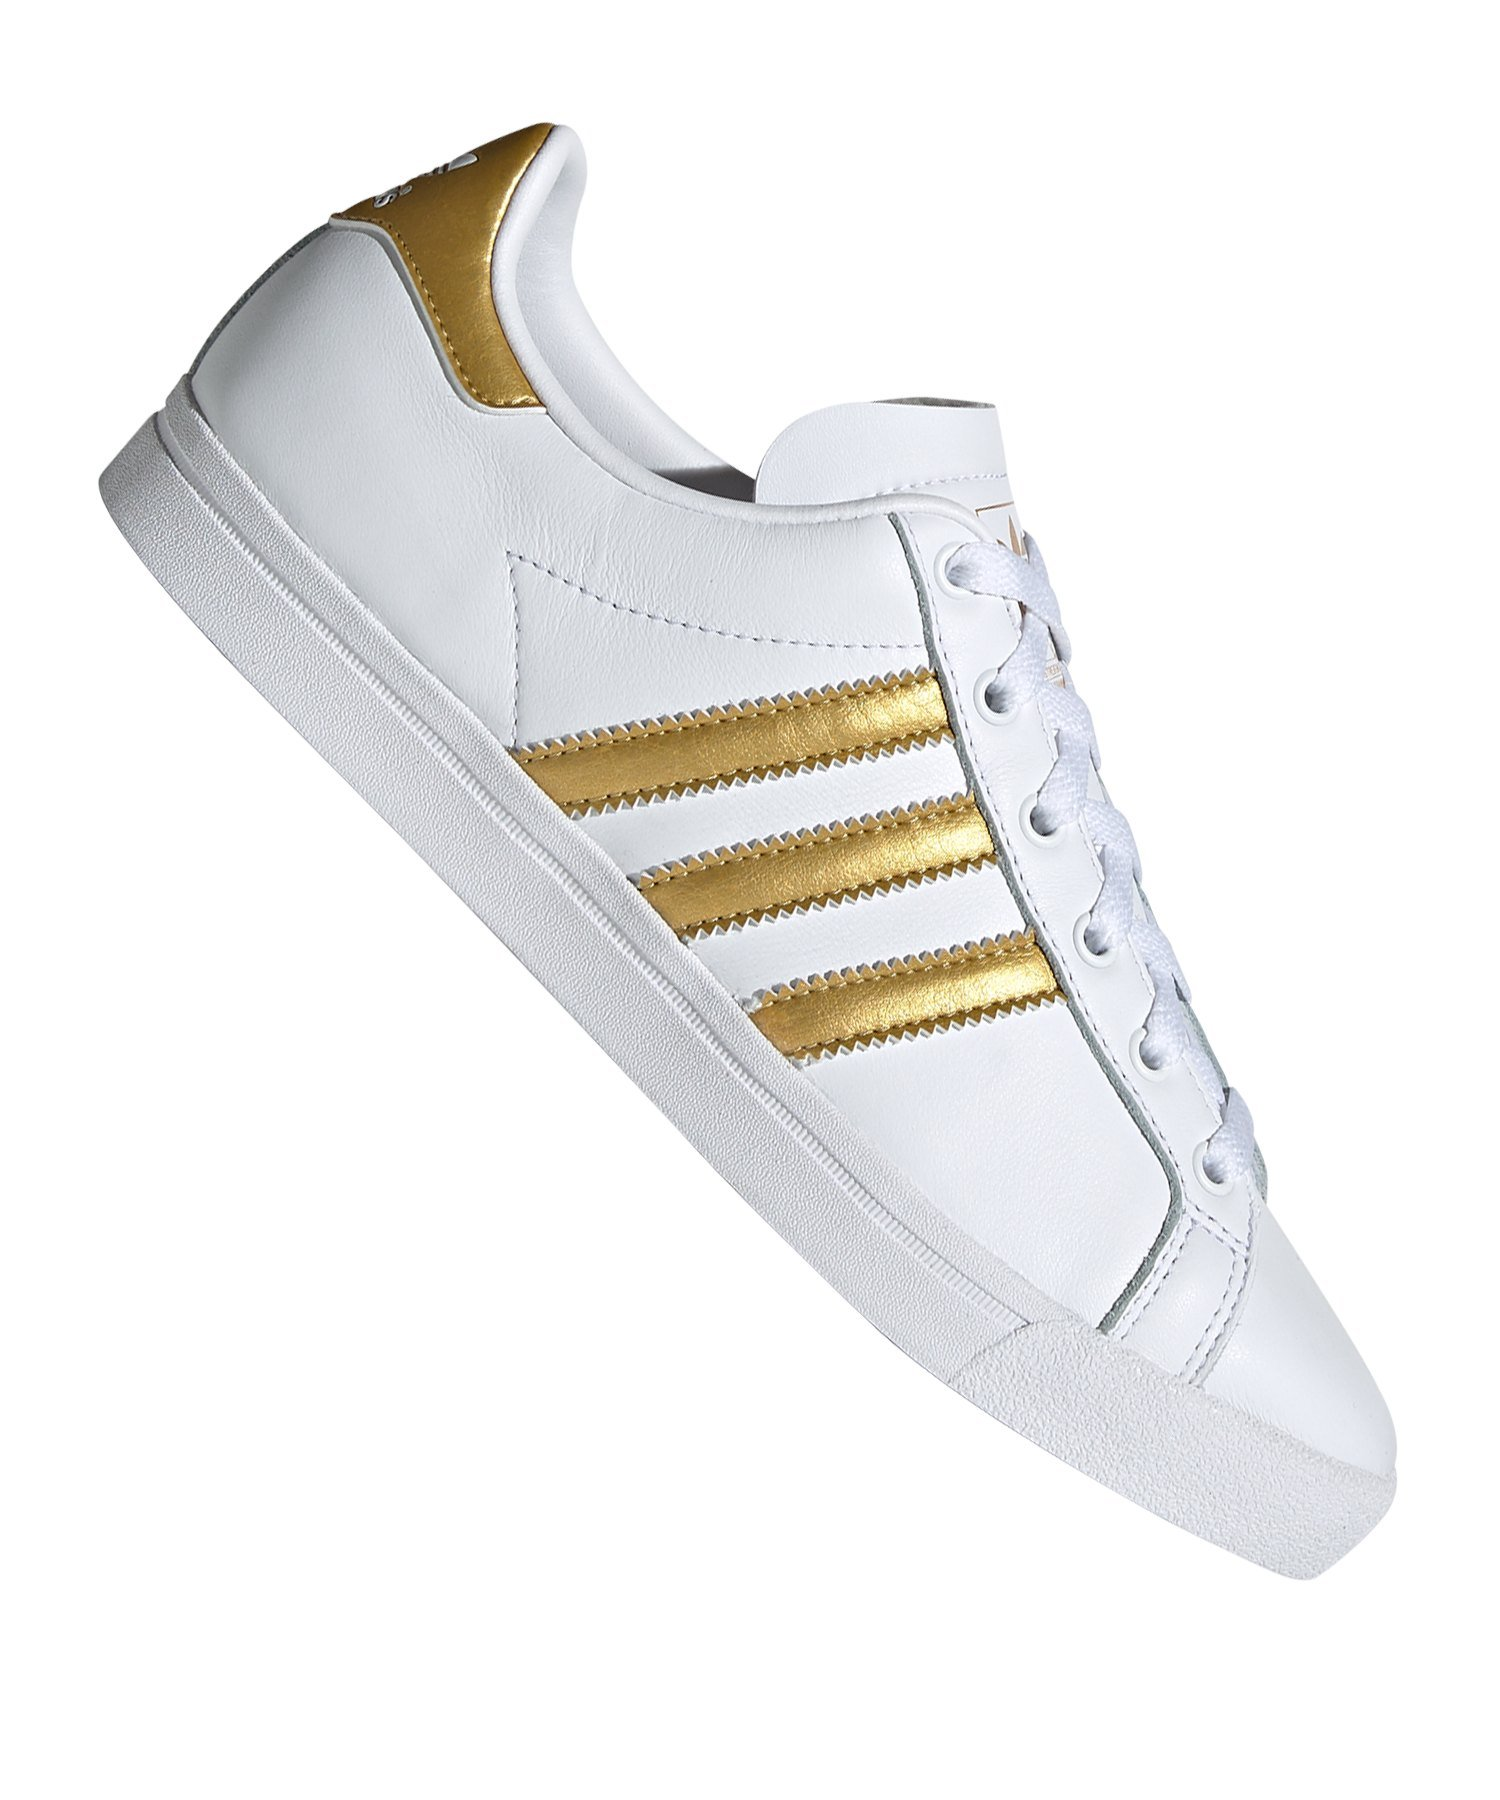 size 40 9c95b 2d856 adidas Originals CS Sneaker Damen Weiss Gold